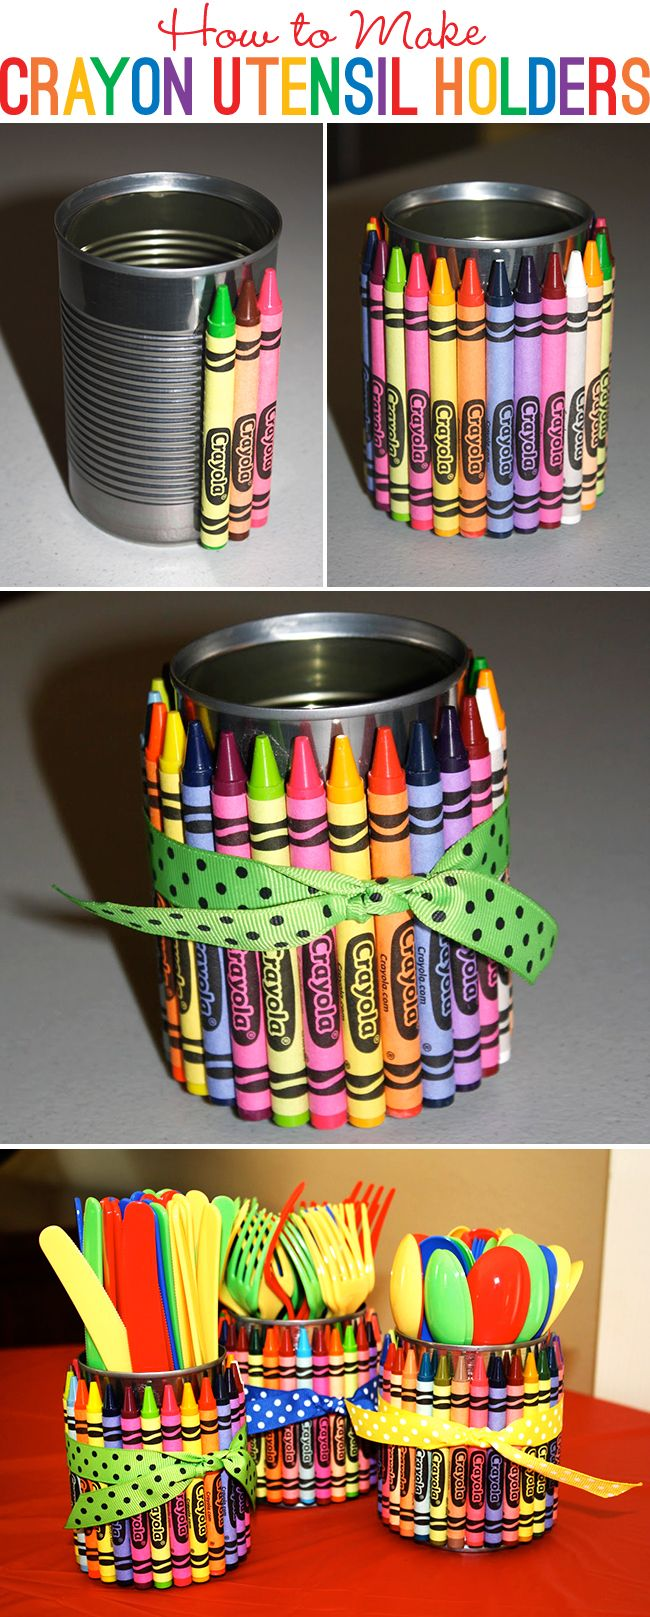 DIY How to make crayon utensil holders...could use in the classroom to hold teacher supplies or for parties to hold utensils.  Just gives such an added pop of color & whimsy!